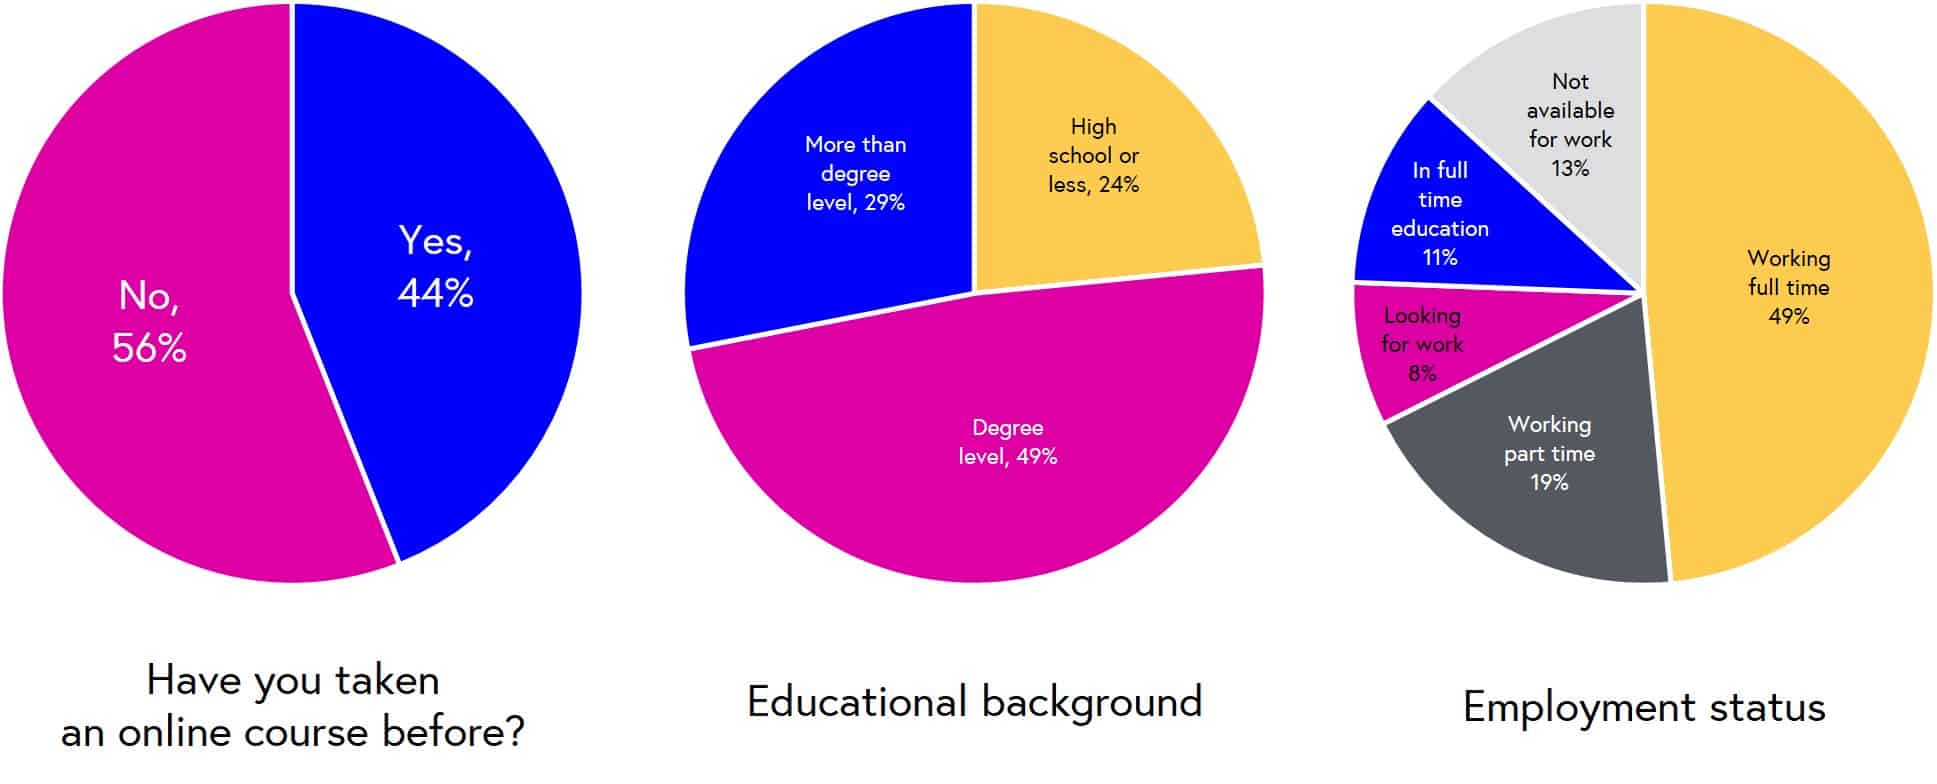 Education  and employment status